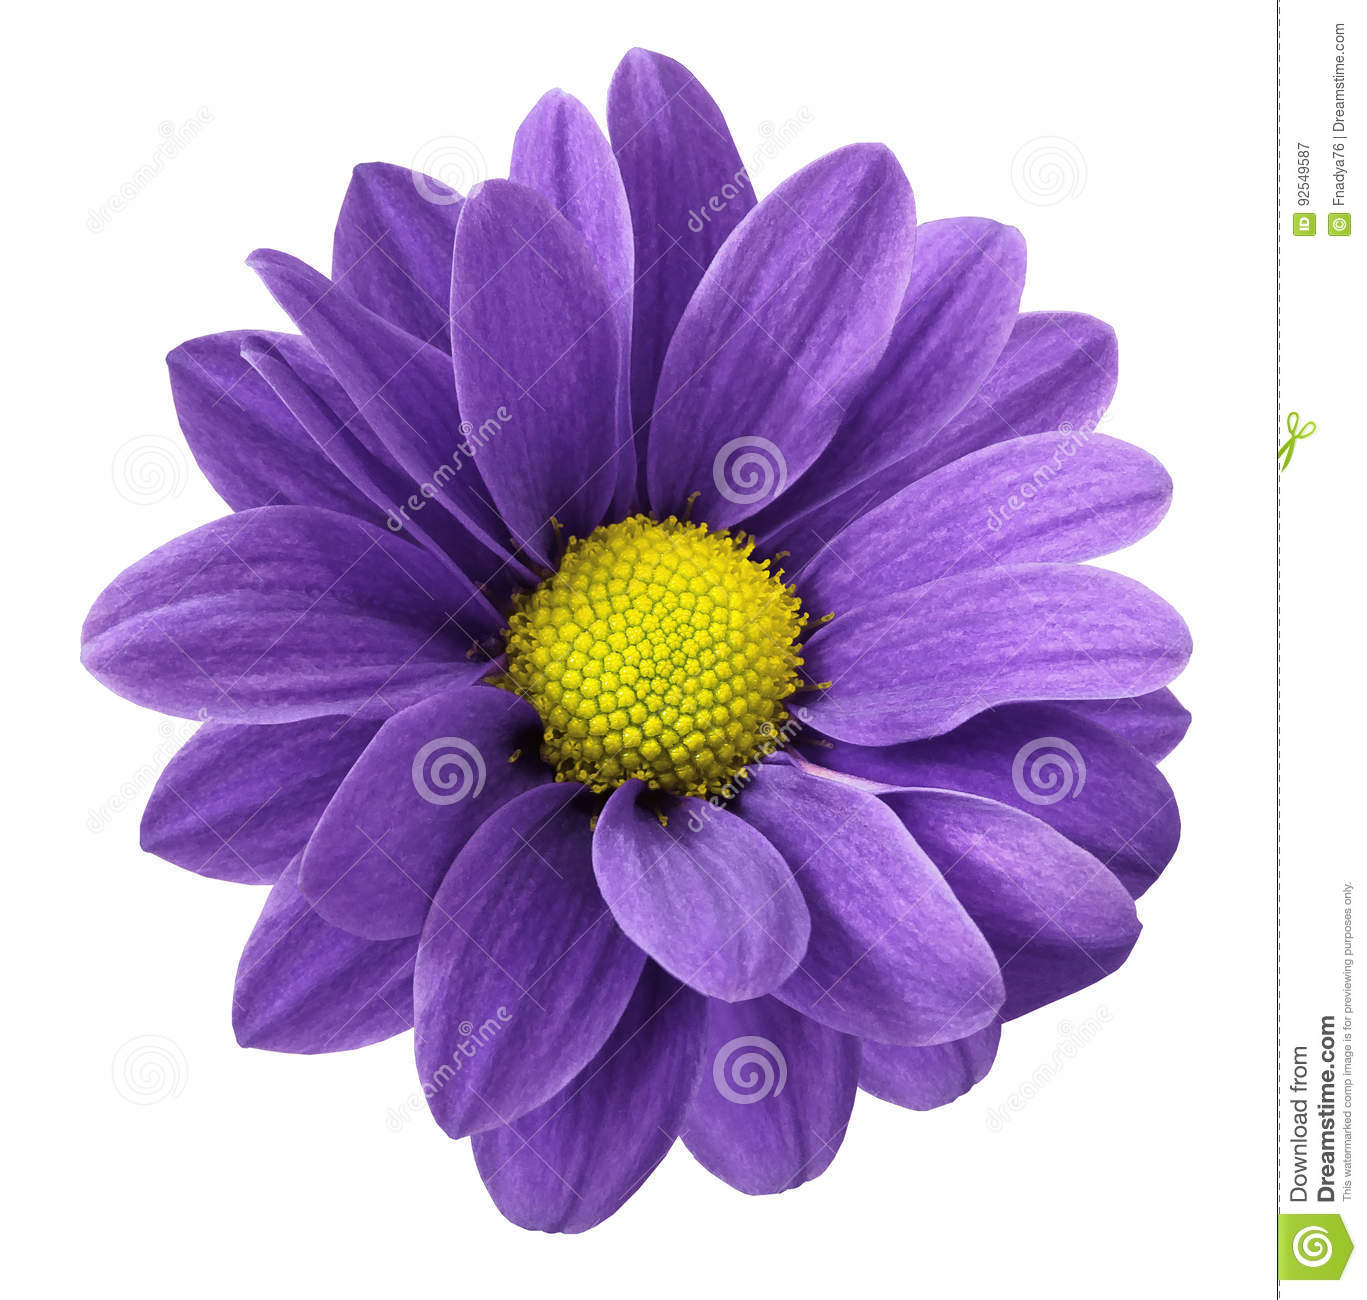 Purple gerbera flower. White isolated background with clipping path. Closeup. no shadows. For design.